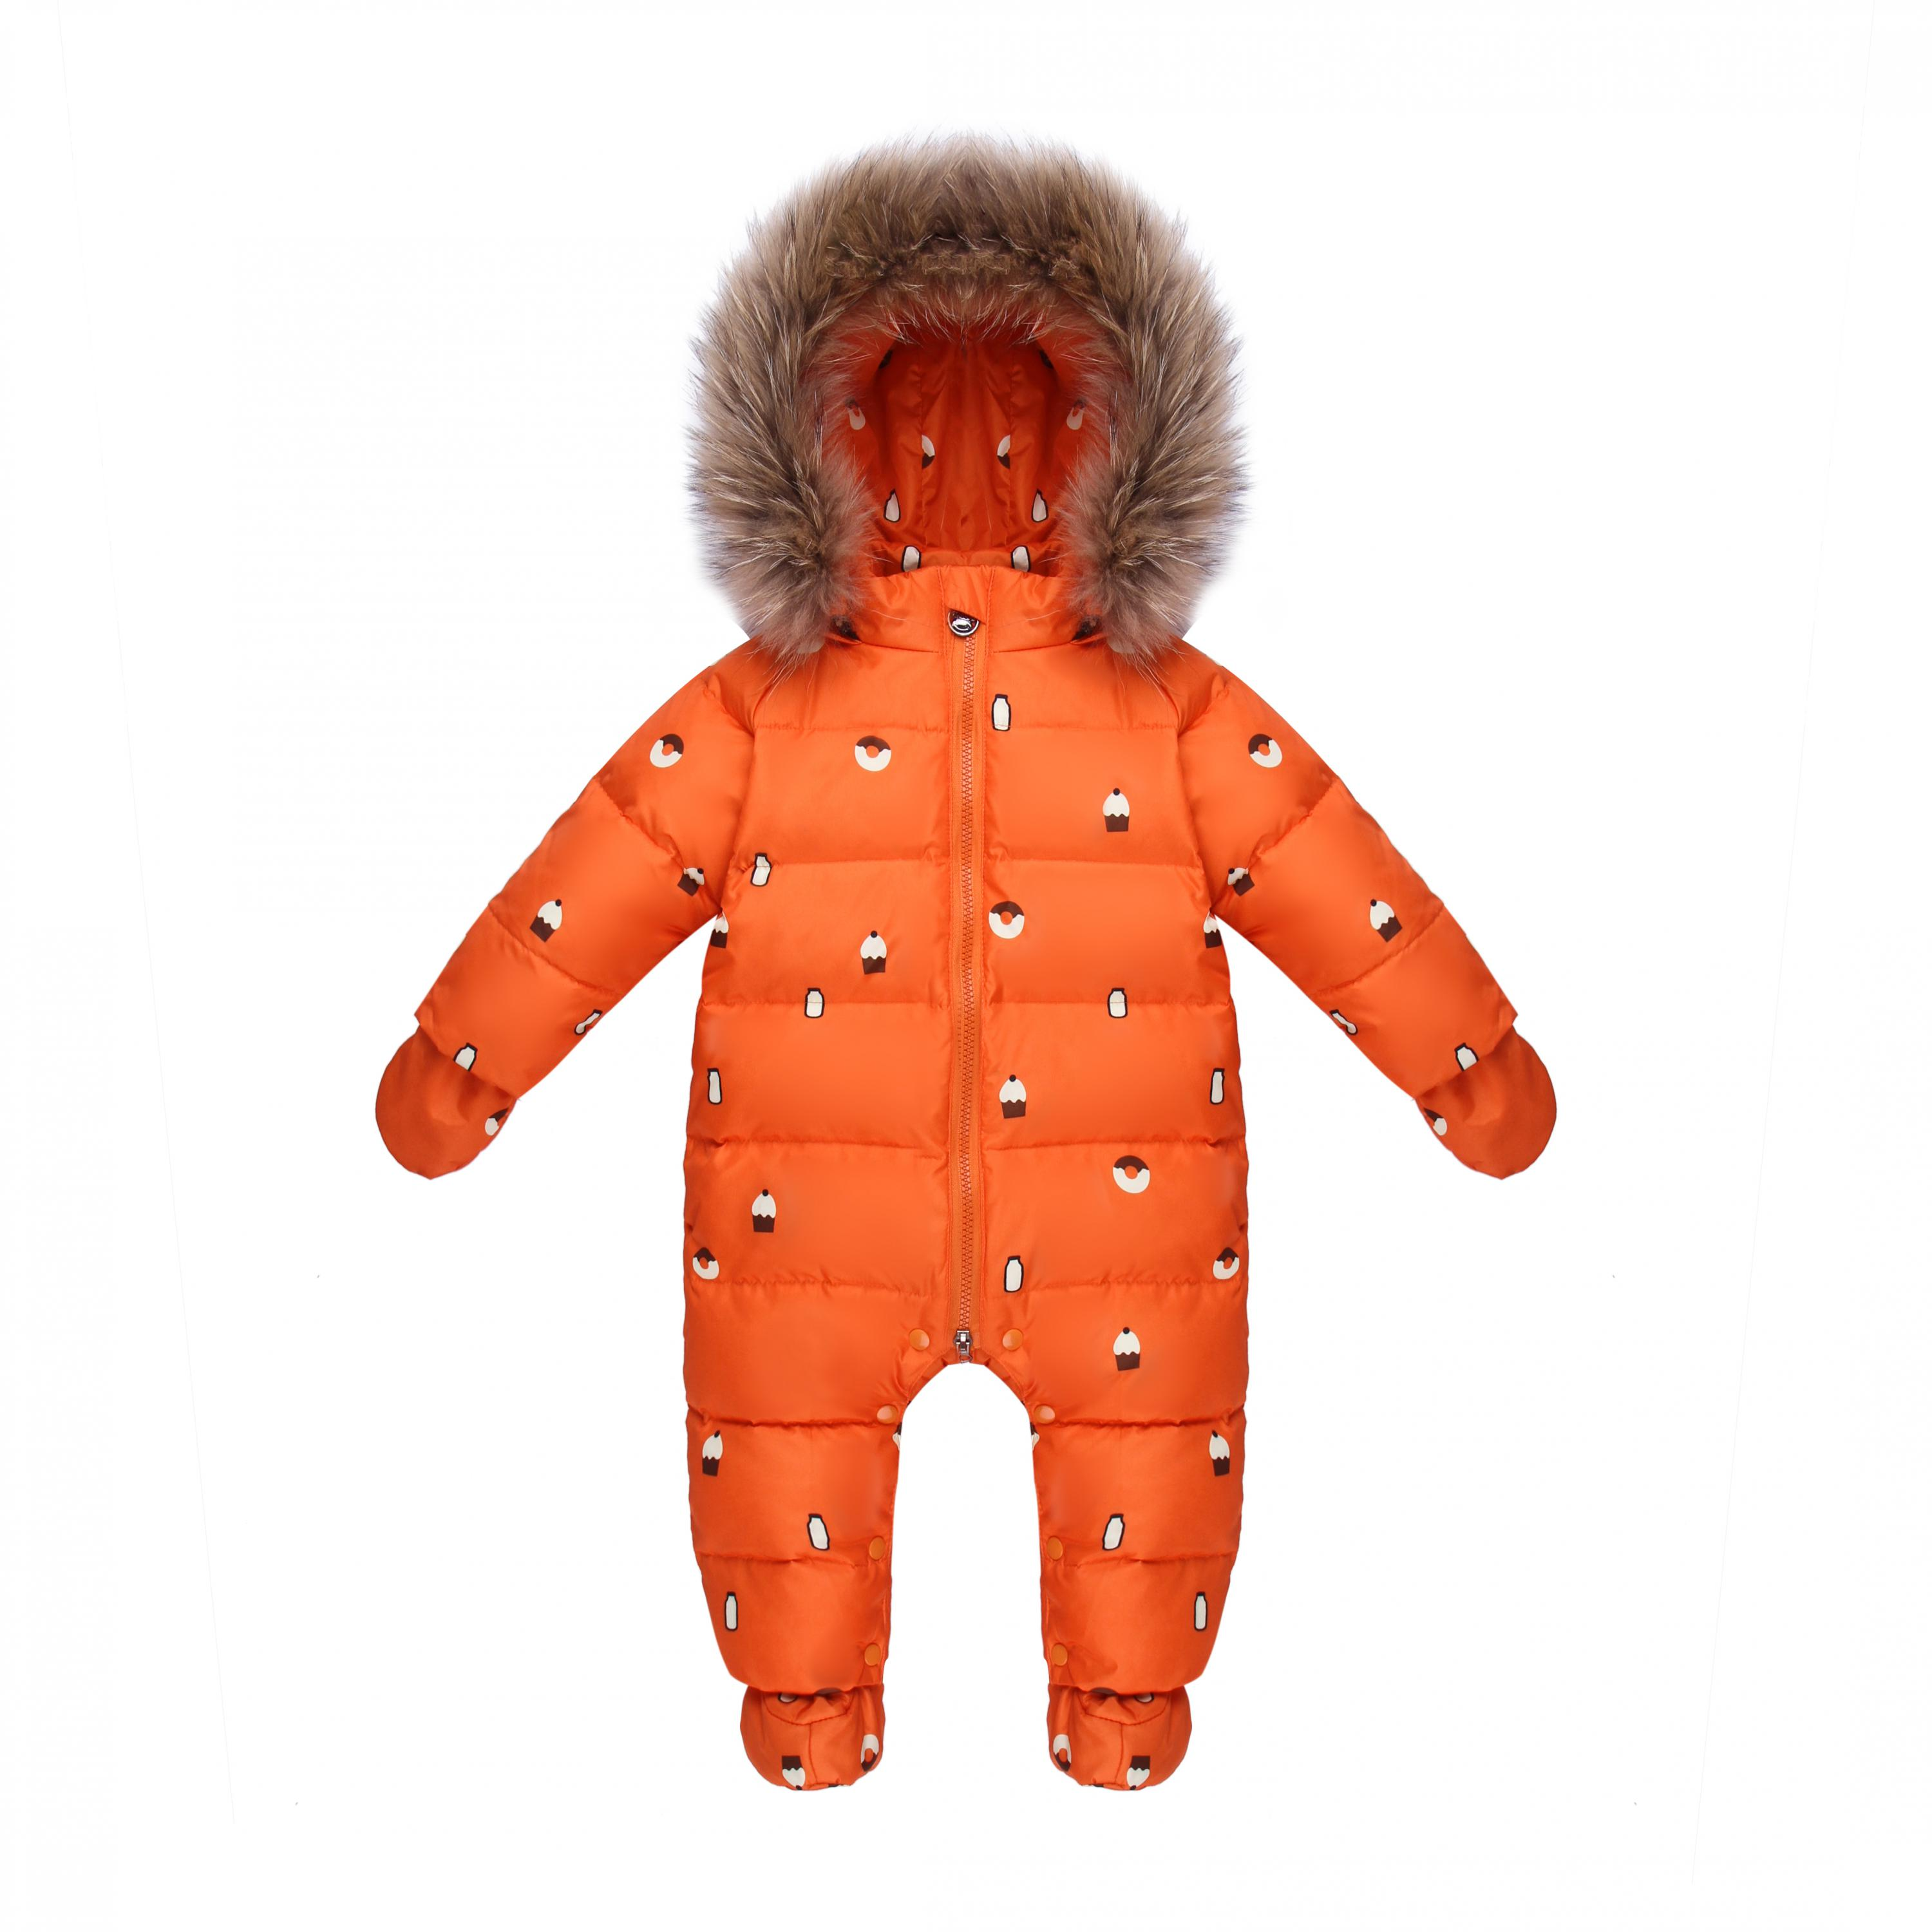 Baby Winter Down Jacket Thick Clothes Outdoor childen snow wear 0-1 Years Old Down Jacket winter Hooded Suit cartoon print cute 2017 60 year old 70 grandmother jacket in the elderly mothers installed women s winter 80 elderly lady down jacket